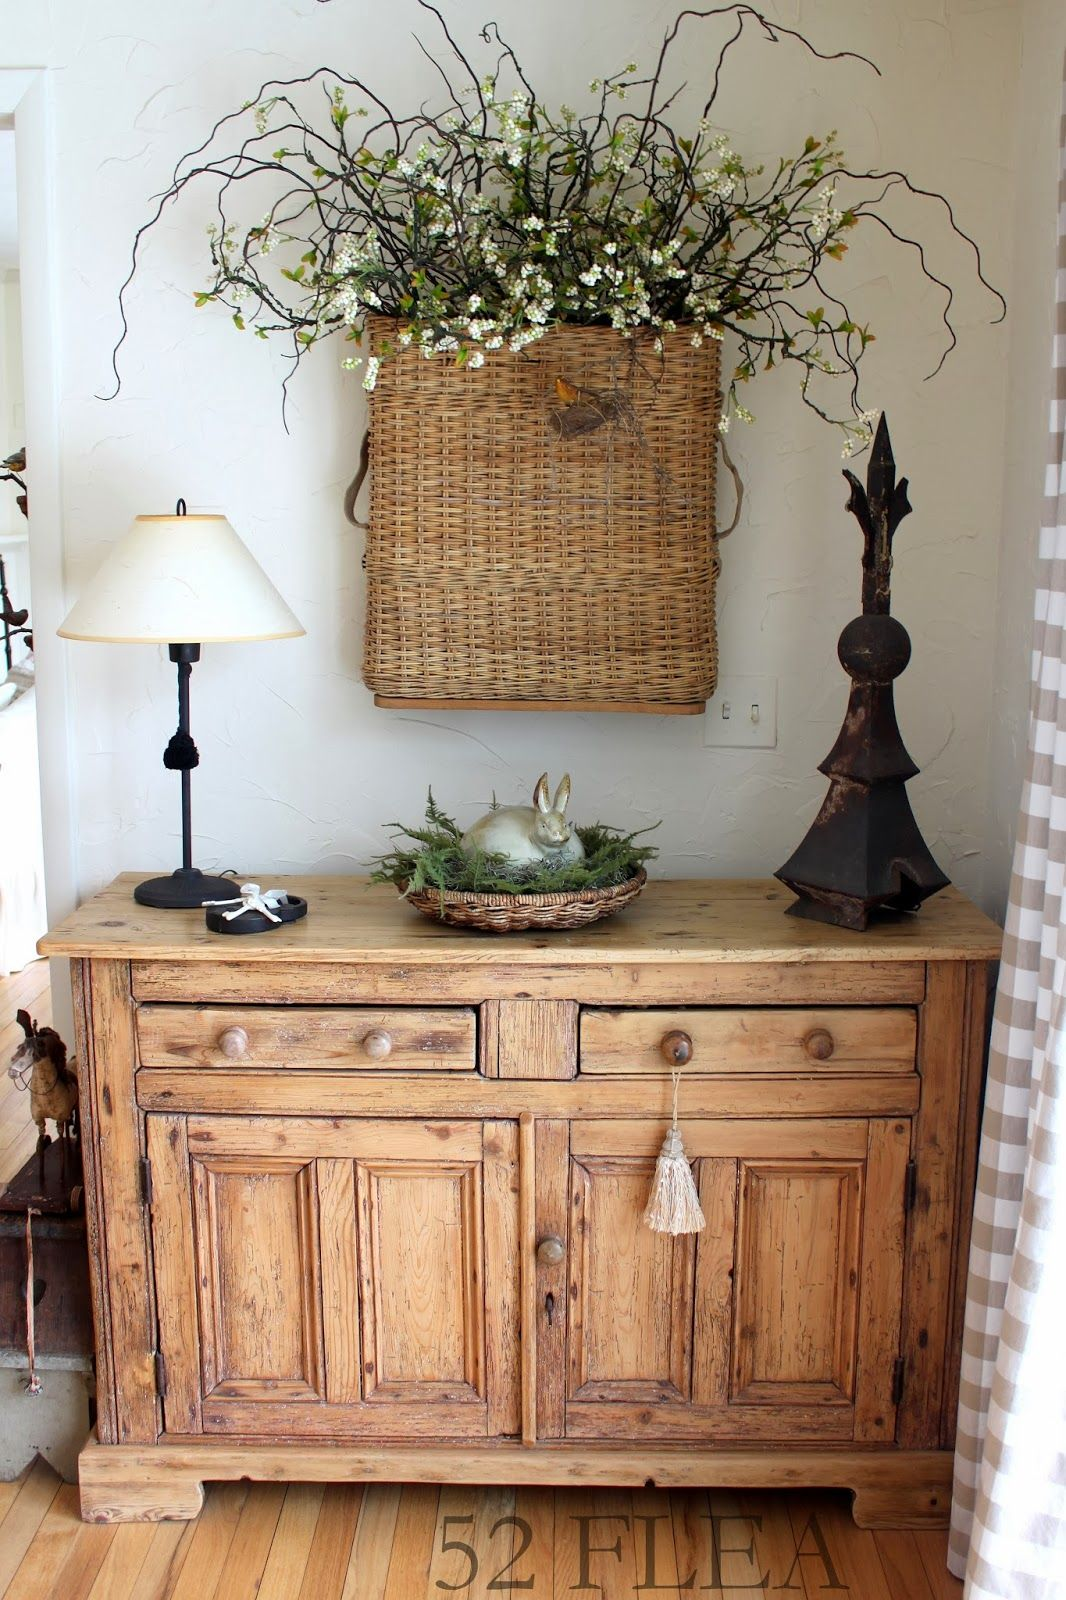 Love the scrubbed pine cabinet and basket.